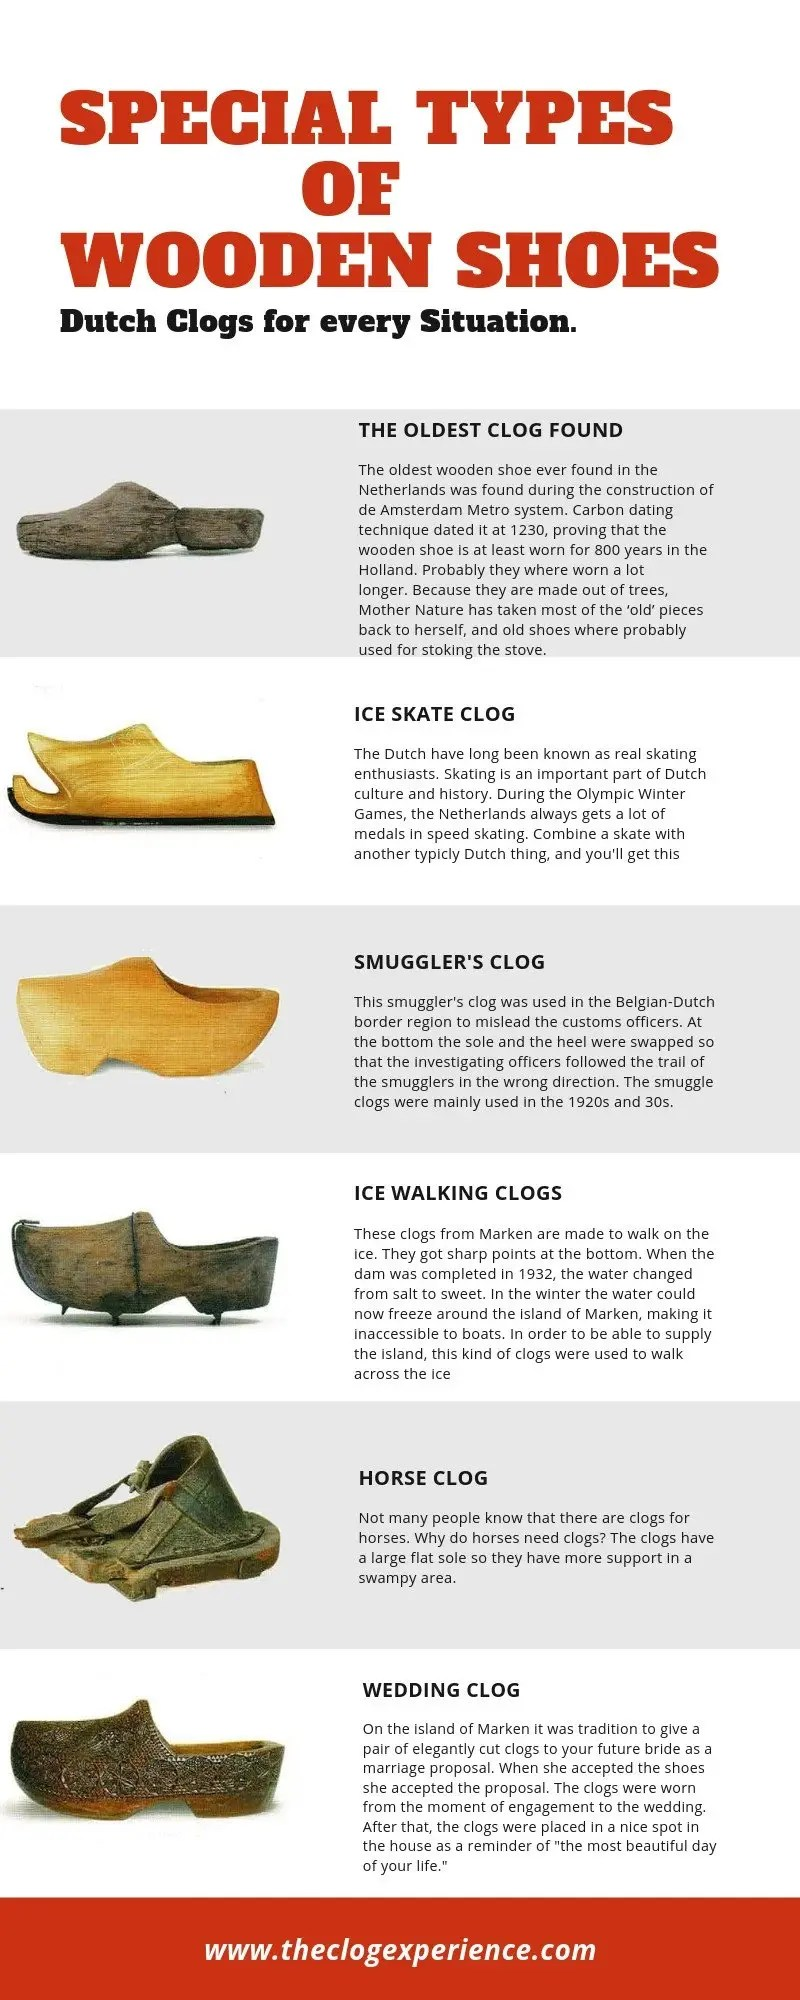 special types of wooden shoes infographic